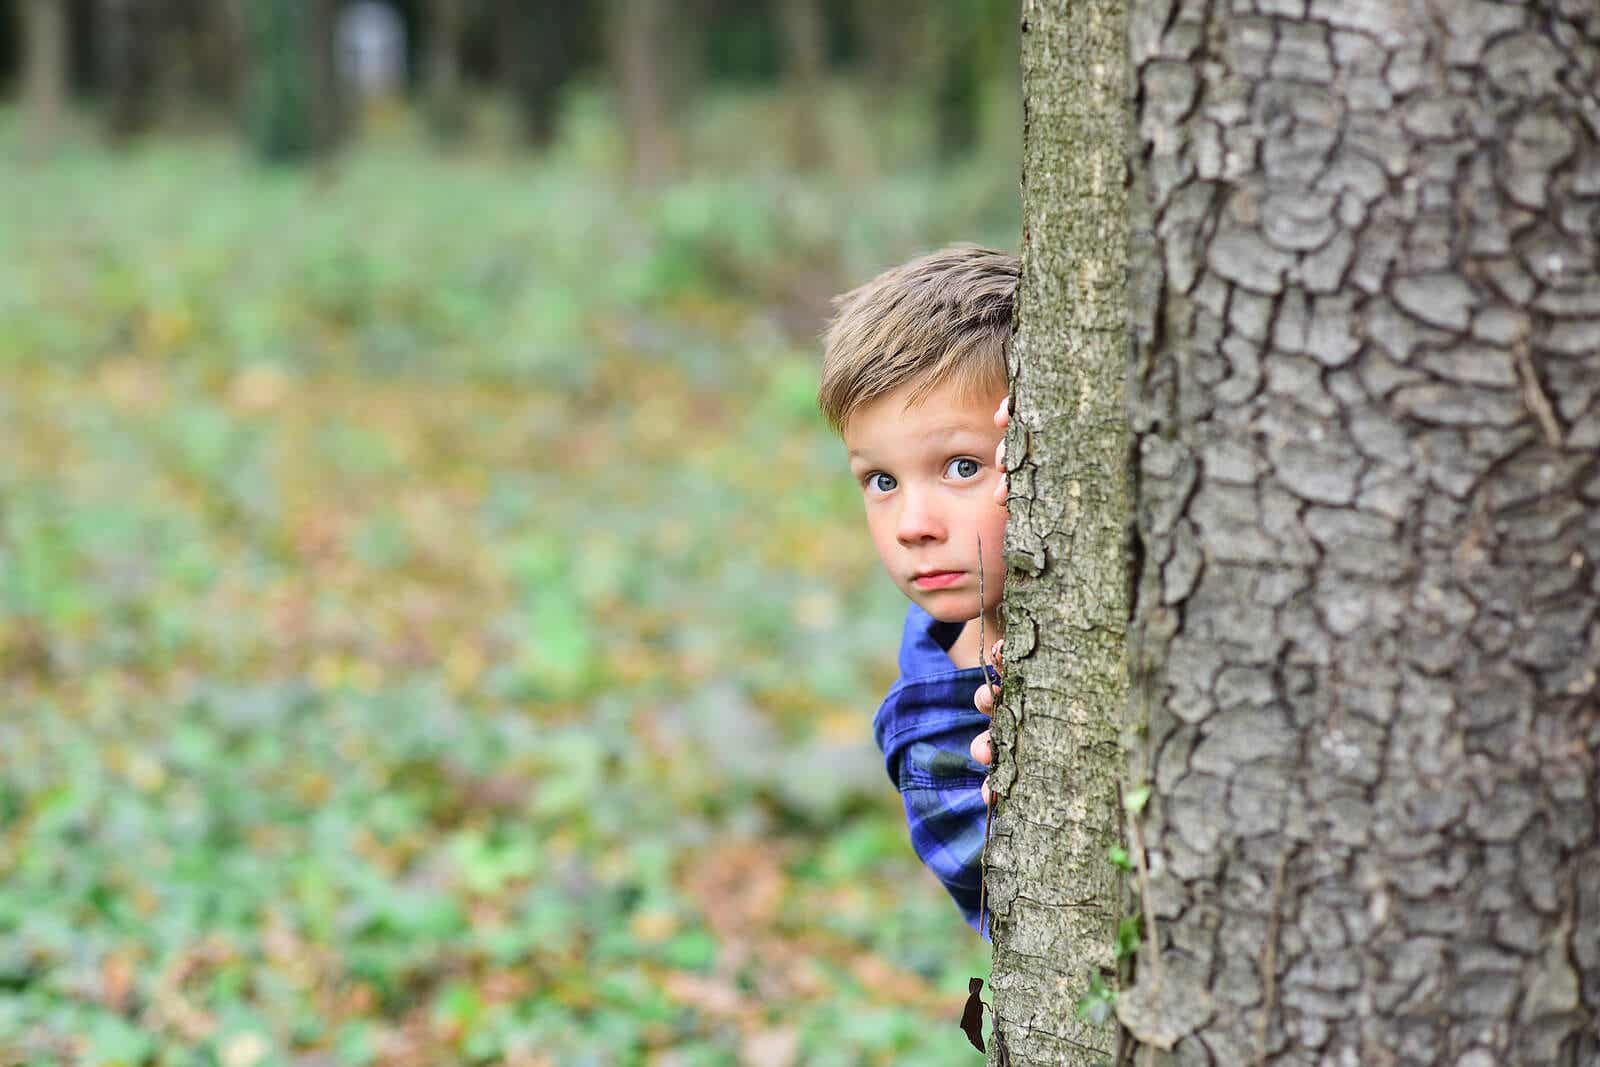 A child hiding behind a tree, looking scared.